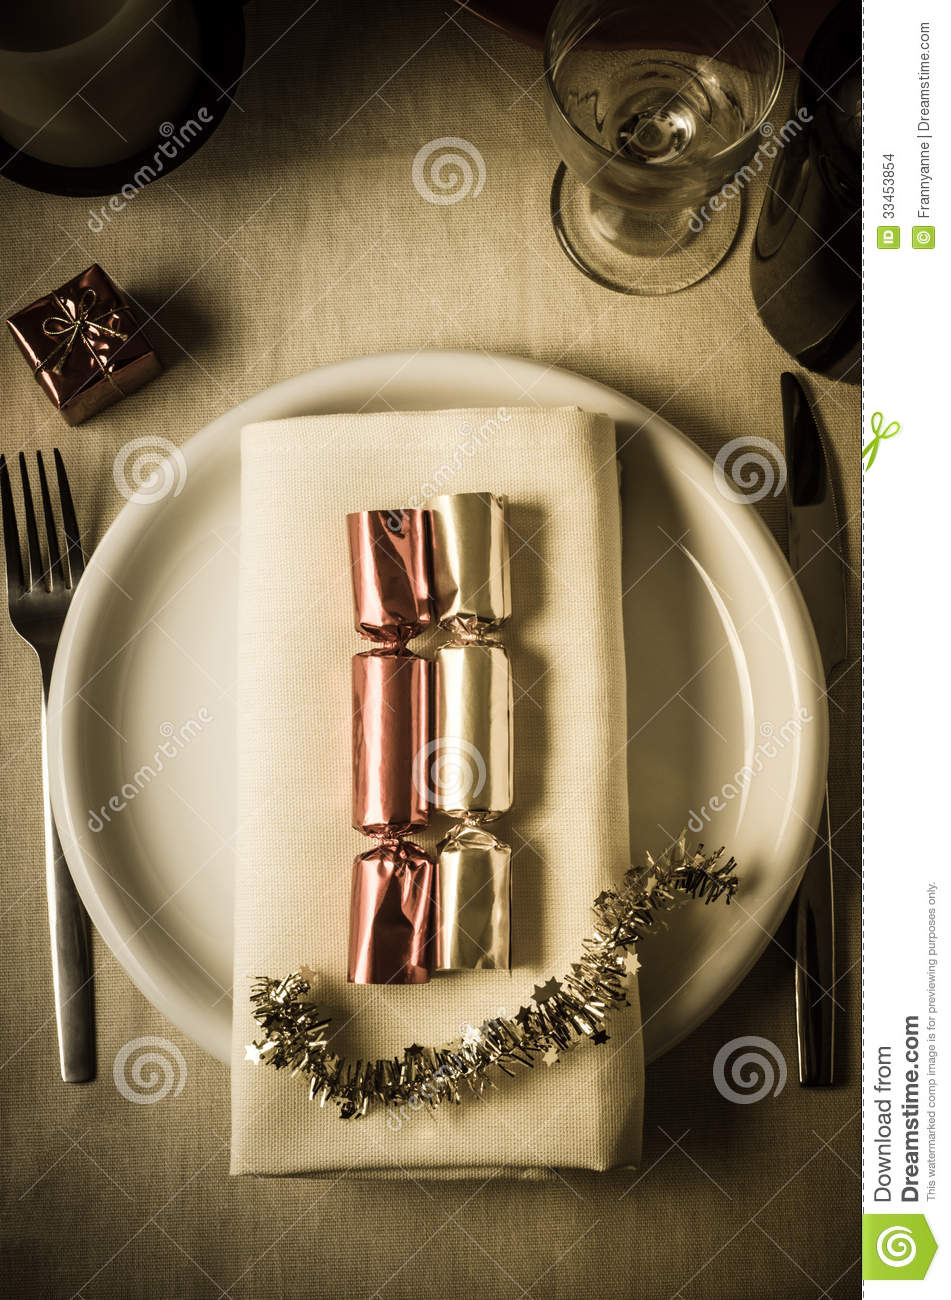 Christmas Table Setting with Crackers